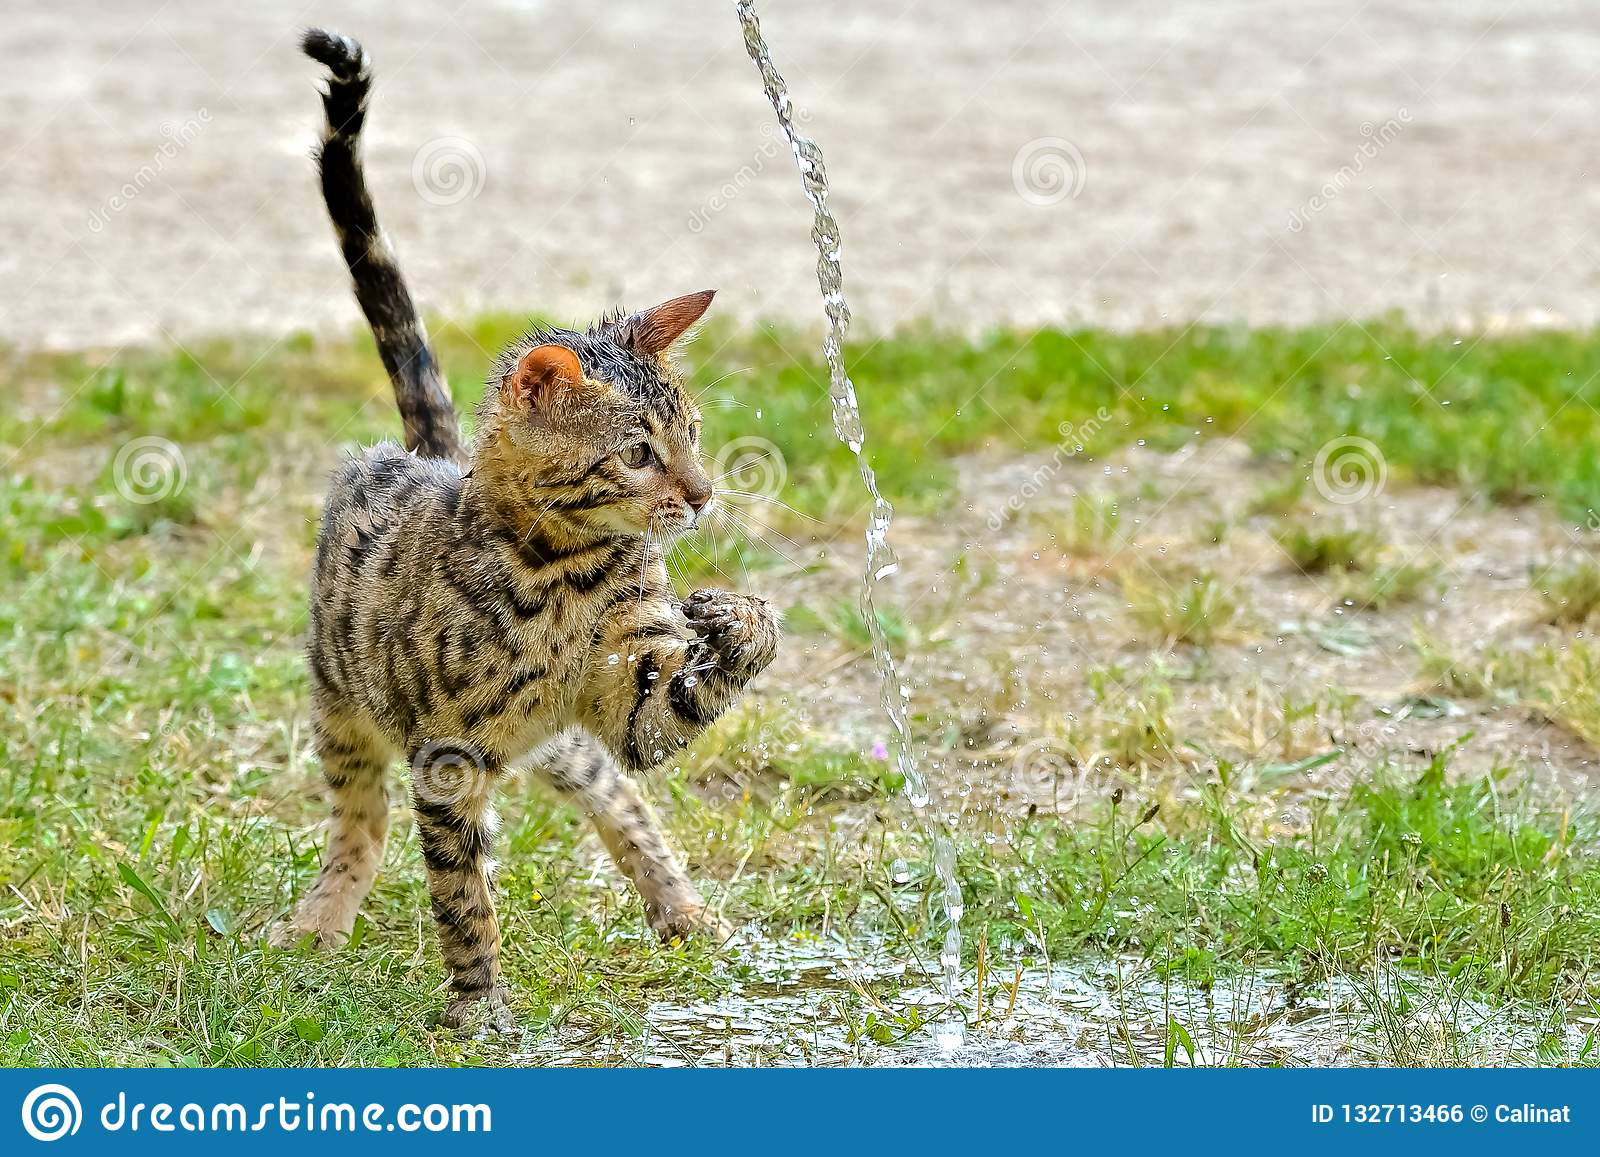 728d275da5 Bengal cat playing with water